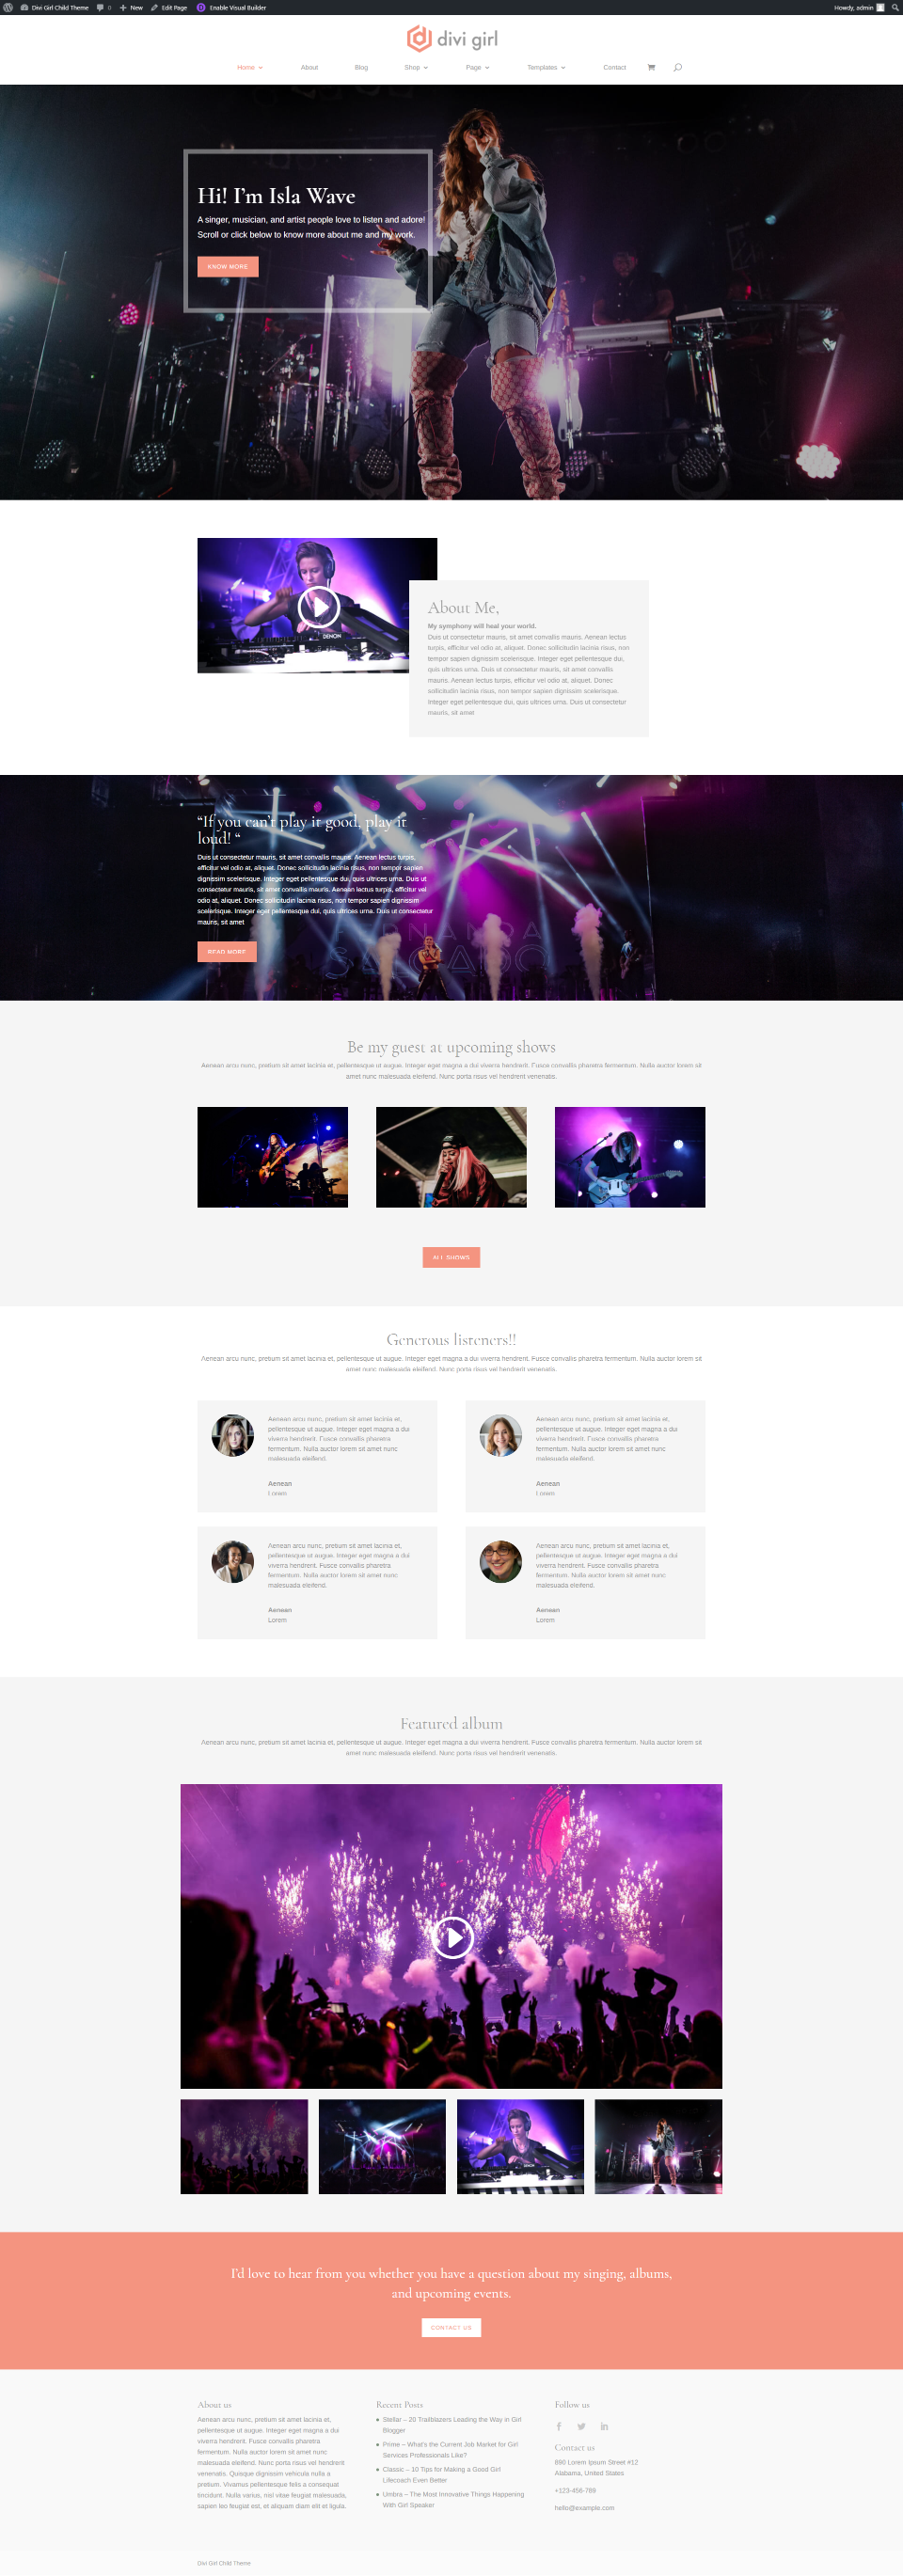 divi-girl-child-theme-overview-18 Divi Girl Child Theme Overview